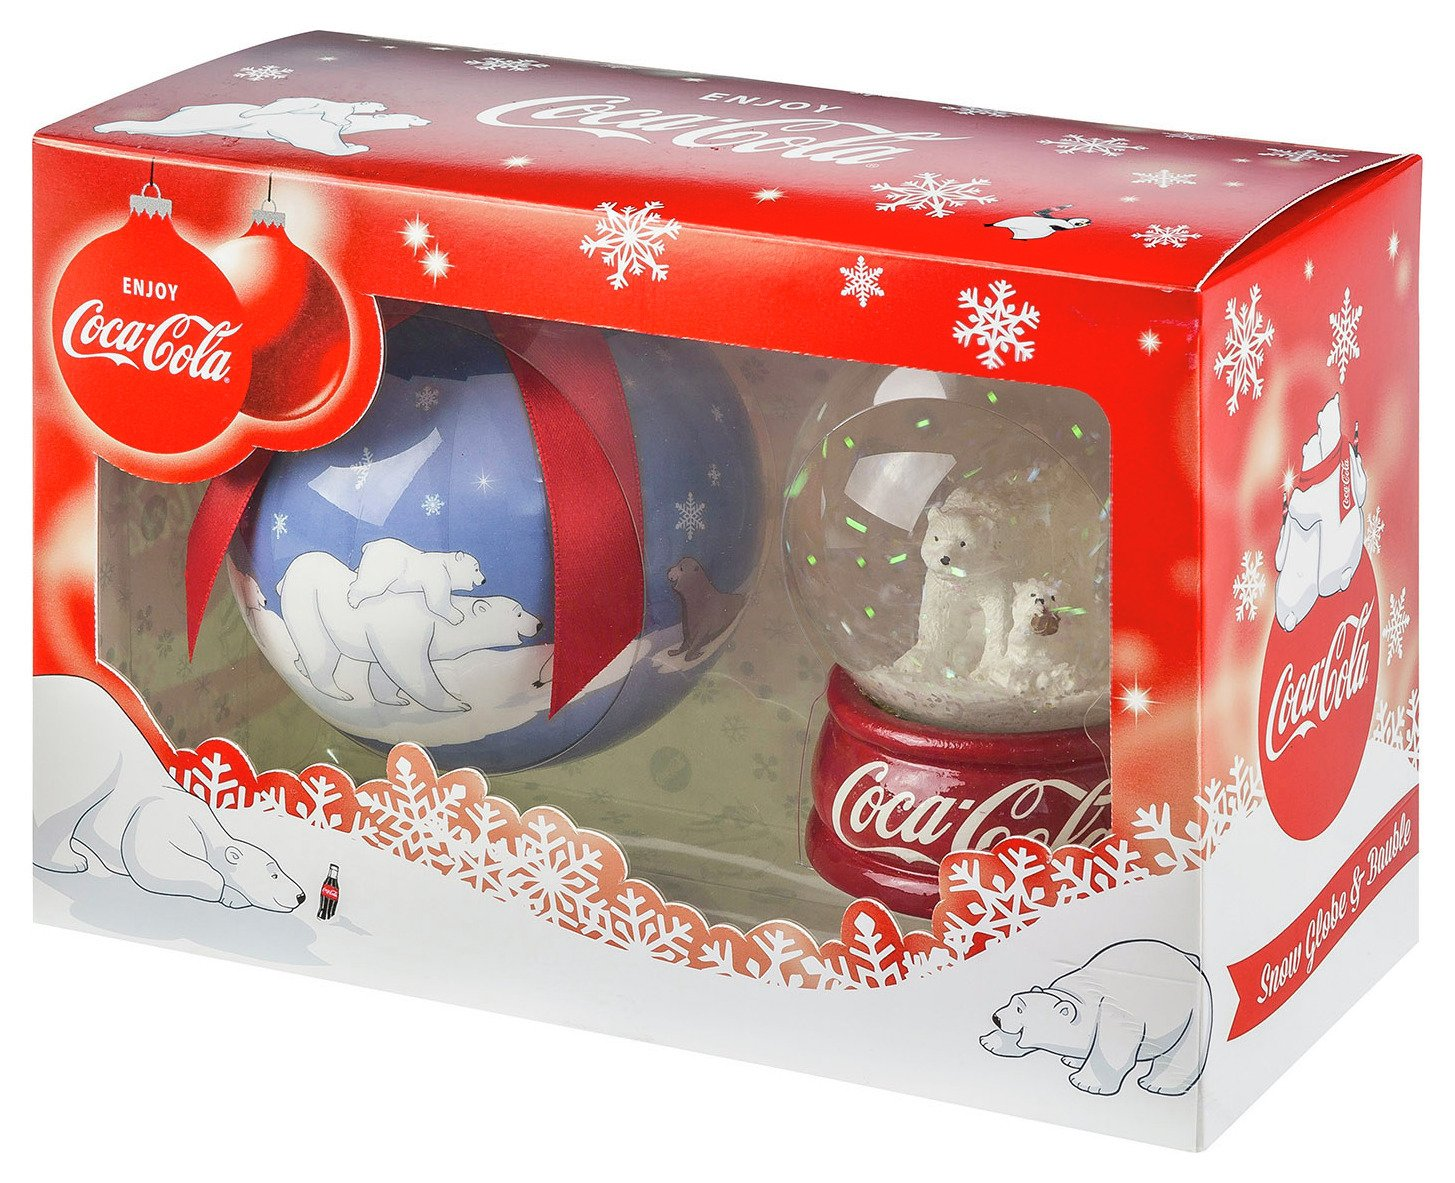 Image of Coca-Cola Snow Globe and Bauble